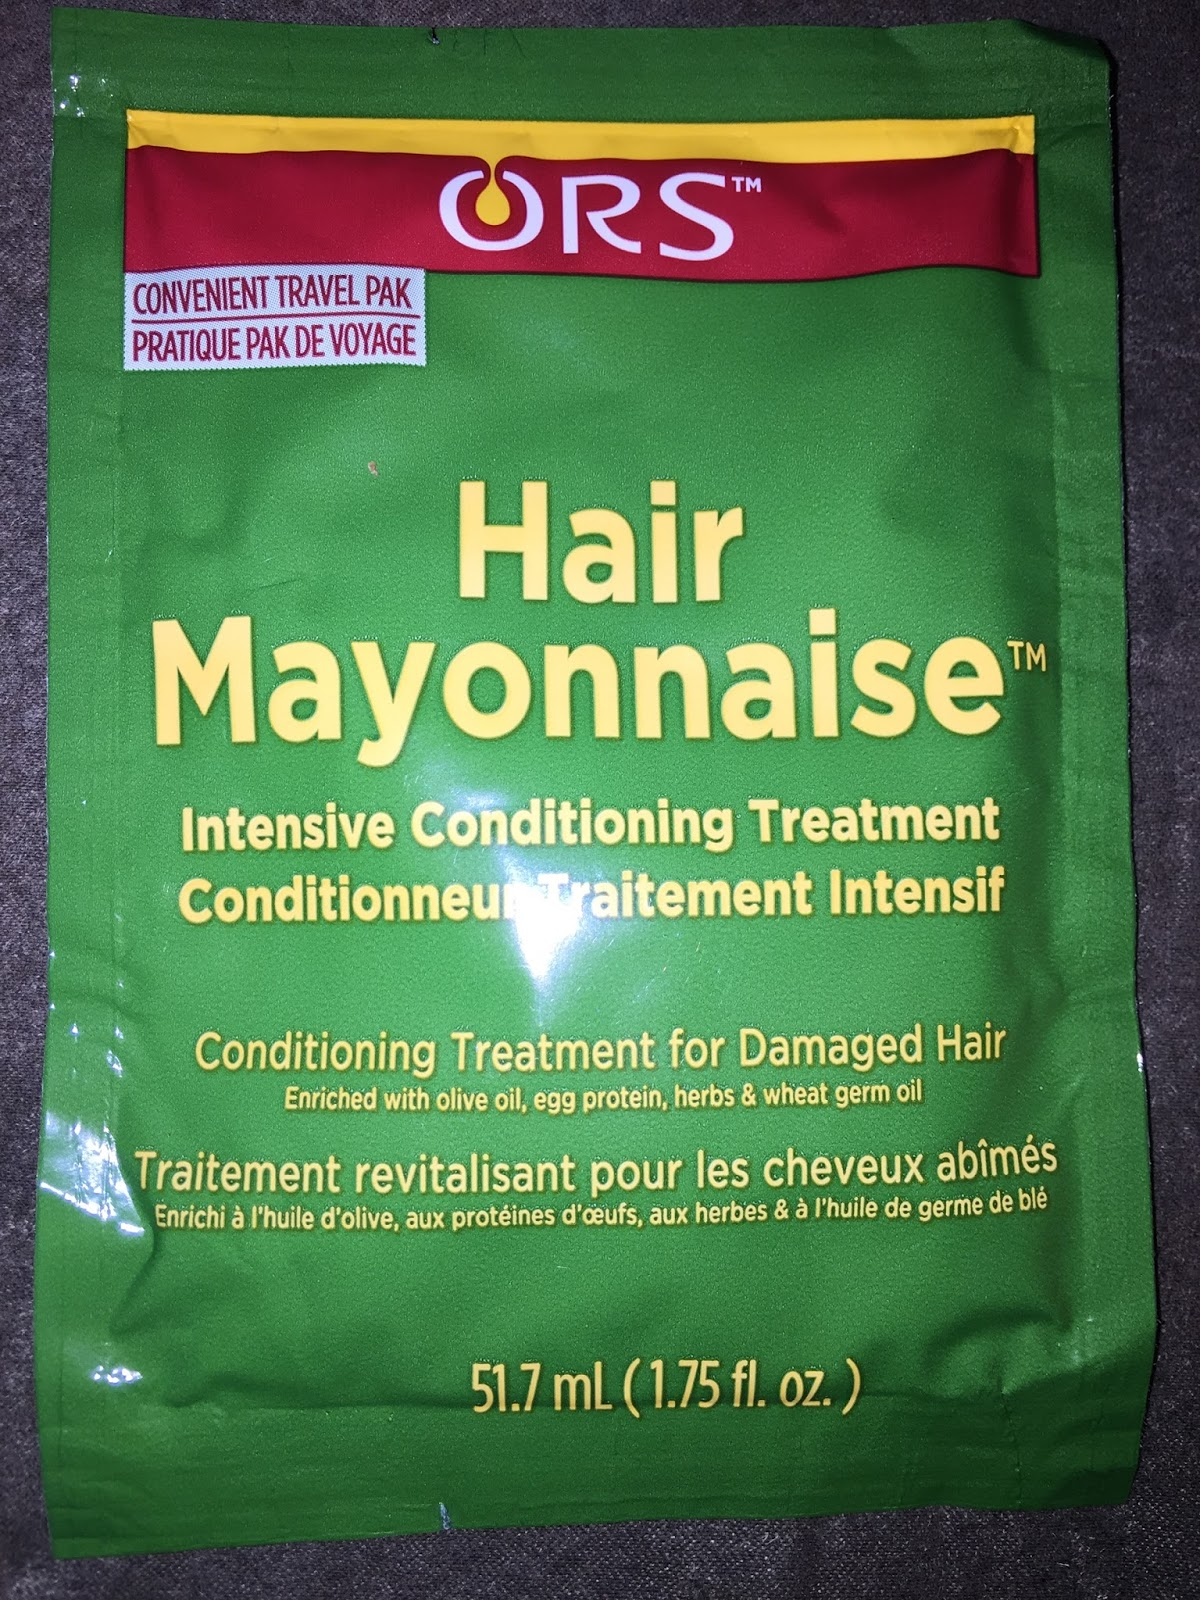 I Am A Fan Of The Ors Olive Oil Replenishing Conditioner So Decided To Give Their Hair Mayonnaise Try Whenever Deep Condition My Always Do